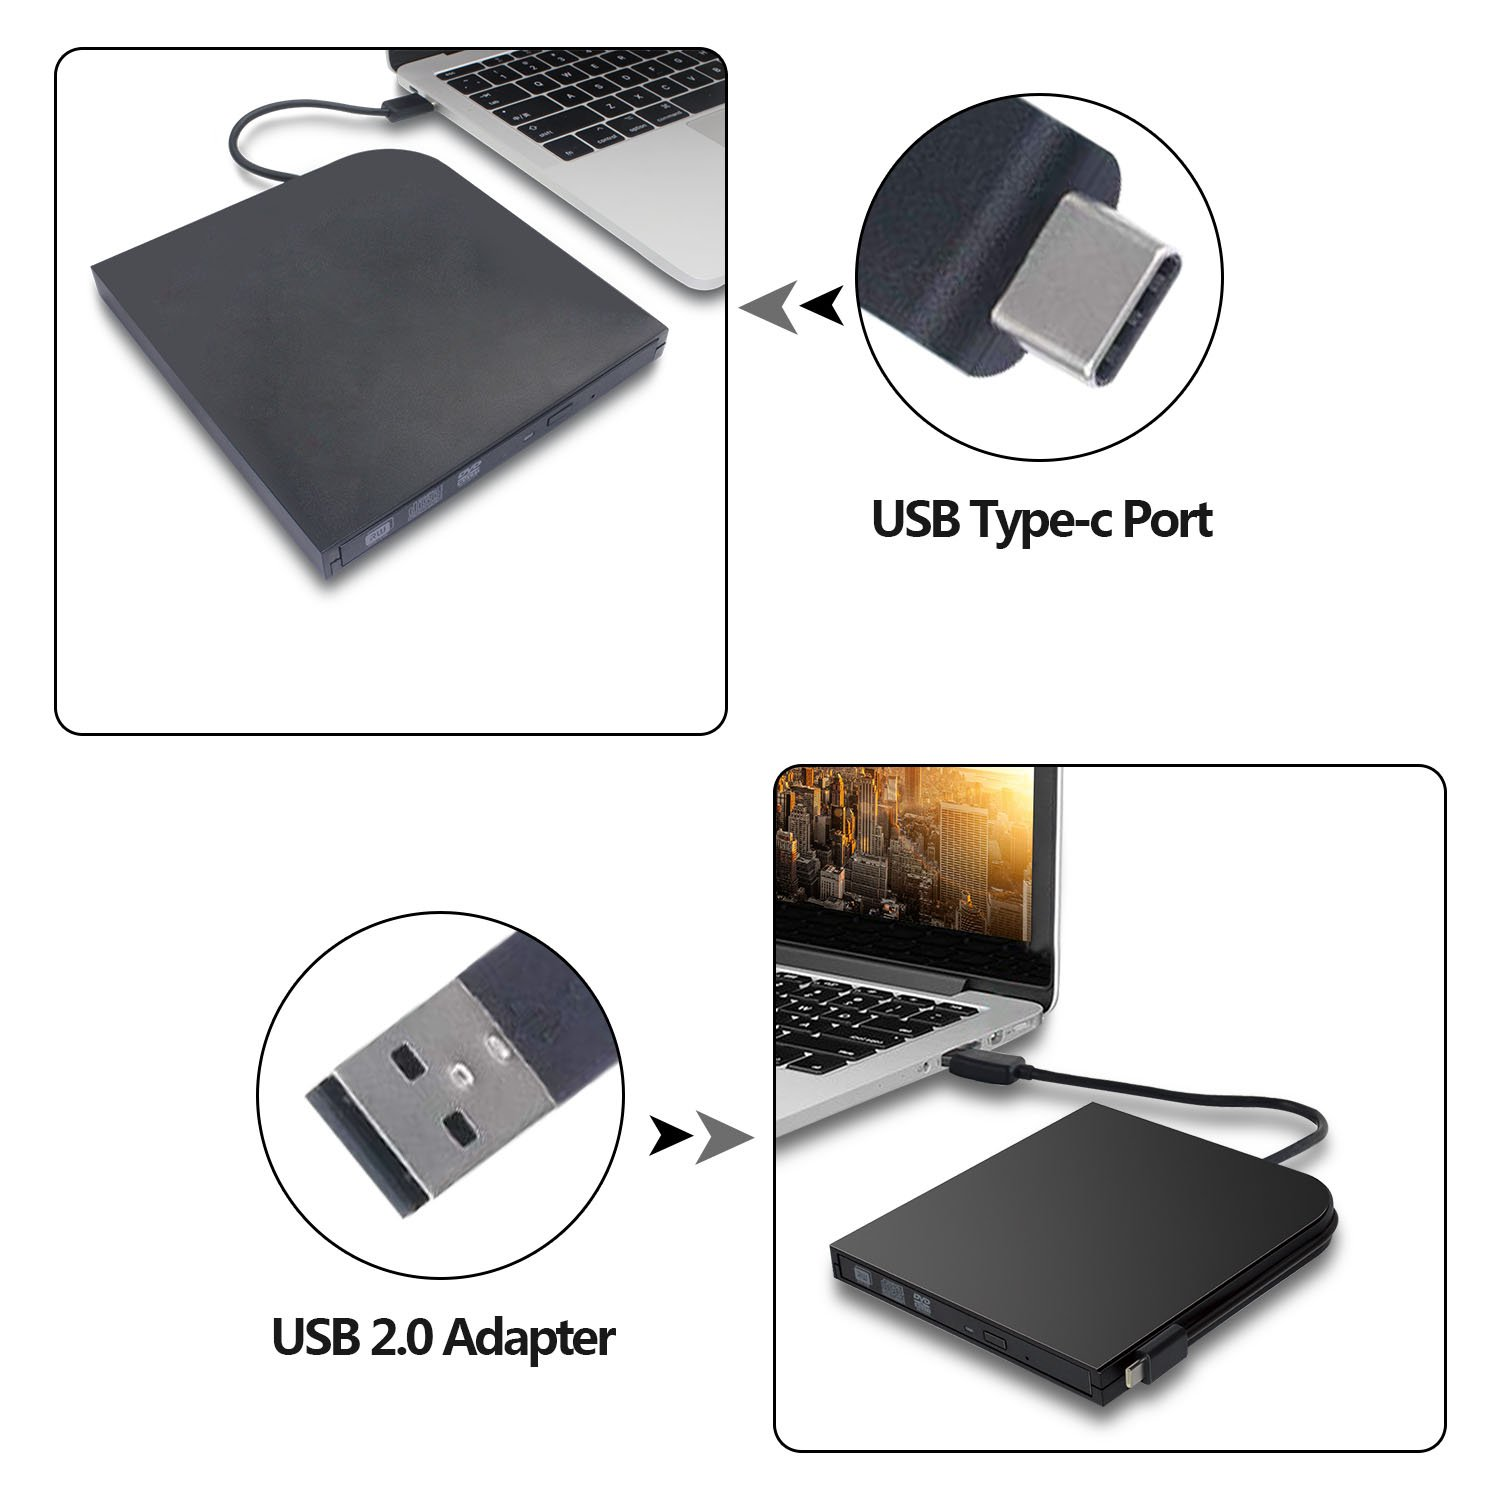 DVD Drive for PC DVD Drive computer CD Drive external dvd-rom player type-c external CD+/-RW buener USB portable DVD/CD ROM reader for various brands of desktops and laptops(not including tablets) by Juanery (Image #6)